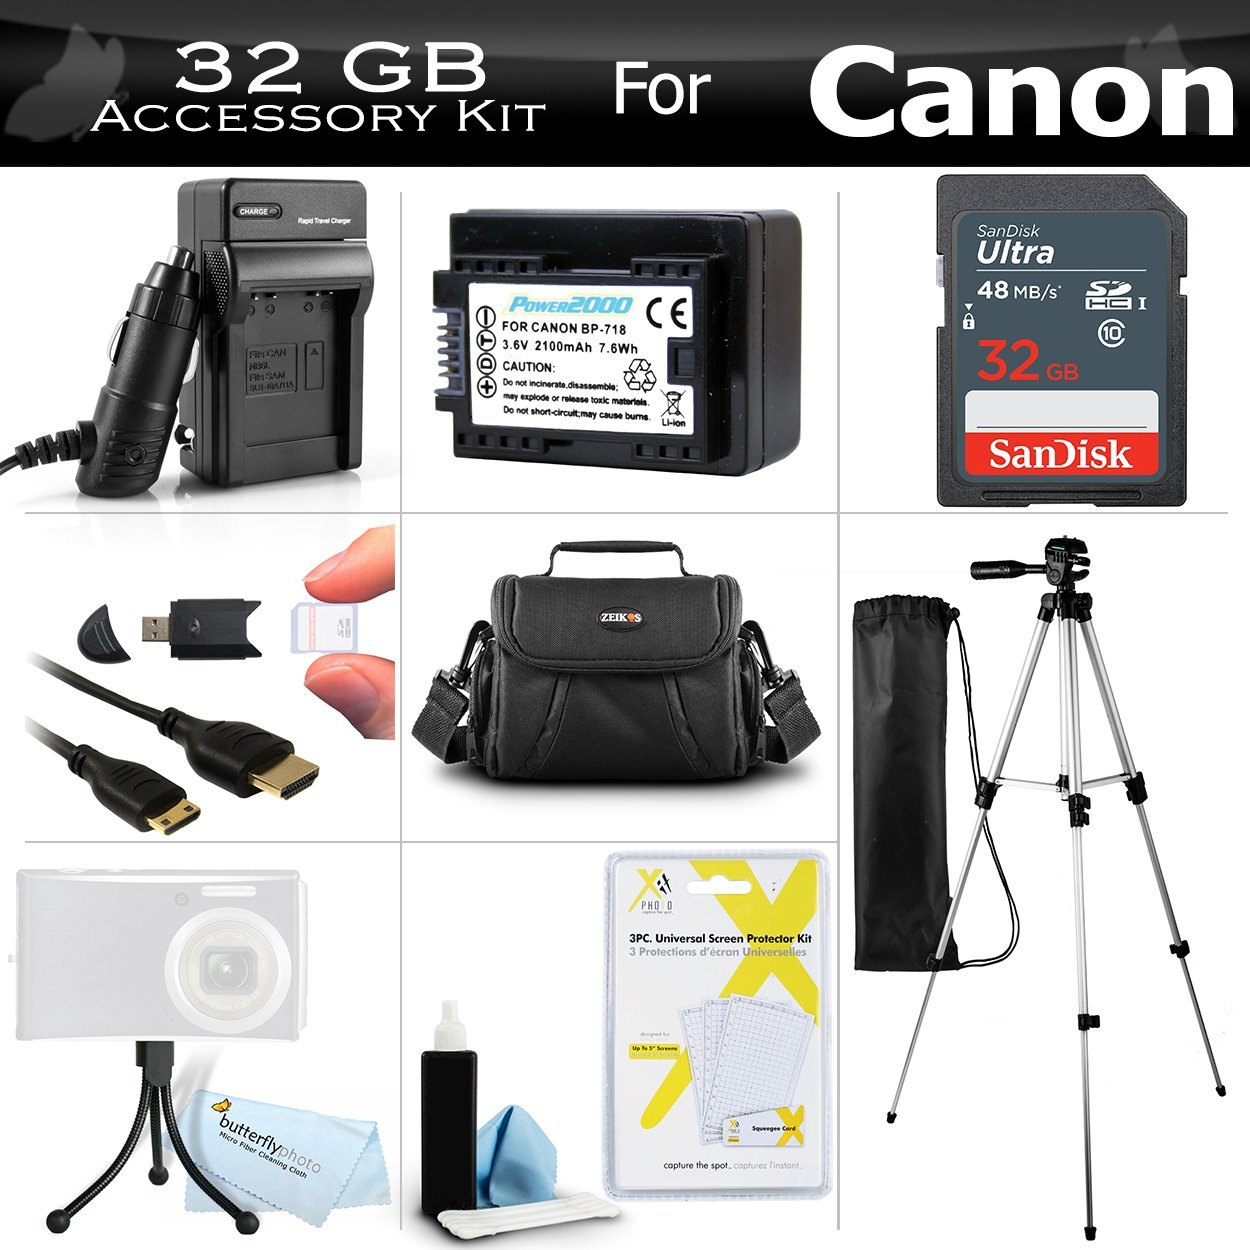 32GB Accessory Kit For Canon VIXIA HF R82, HF R80, HF R800, HF R700, HF R72, HF R70 Digital Camcorder Includes 32GB High Speed SD Memory Card + Replacement BP-718 Battery + Charger + Case + Tripod ++